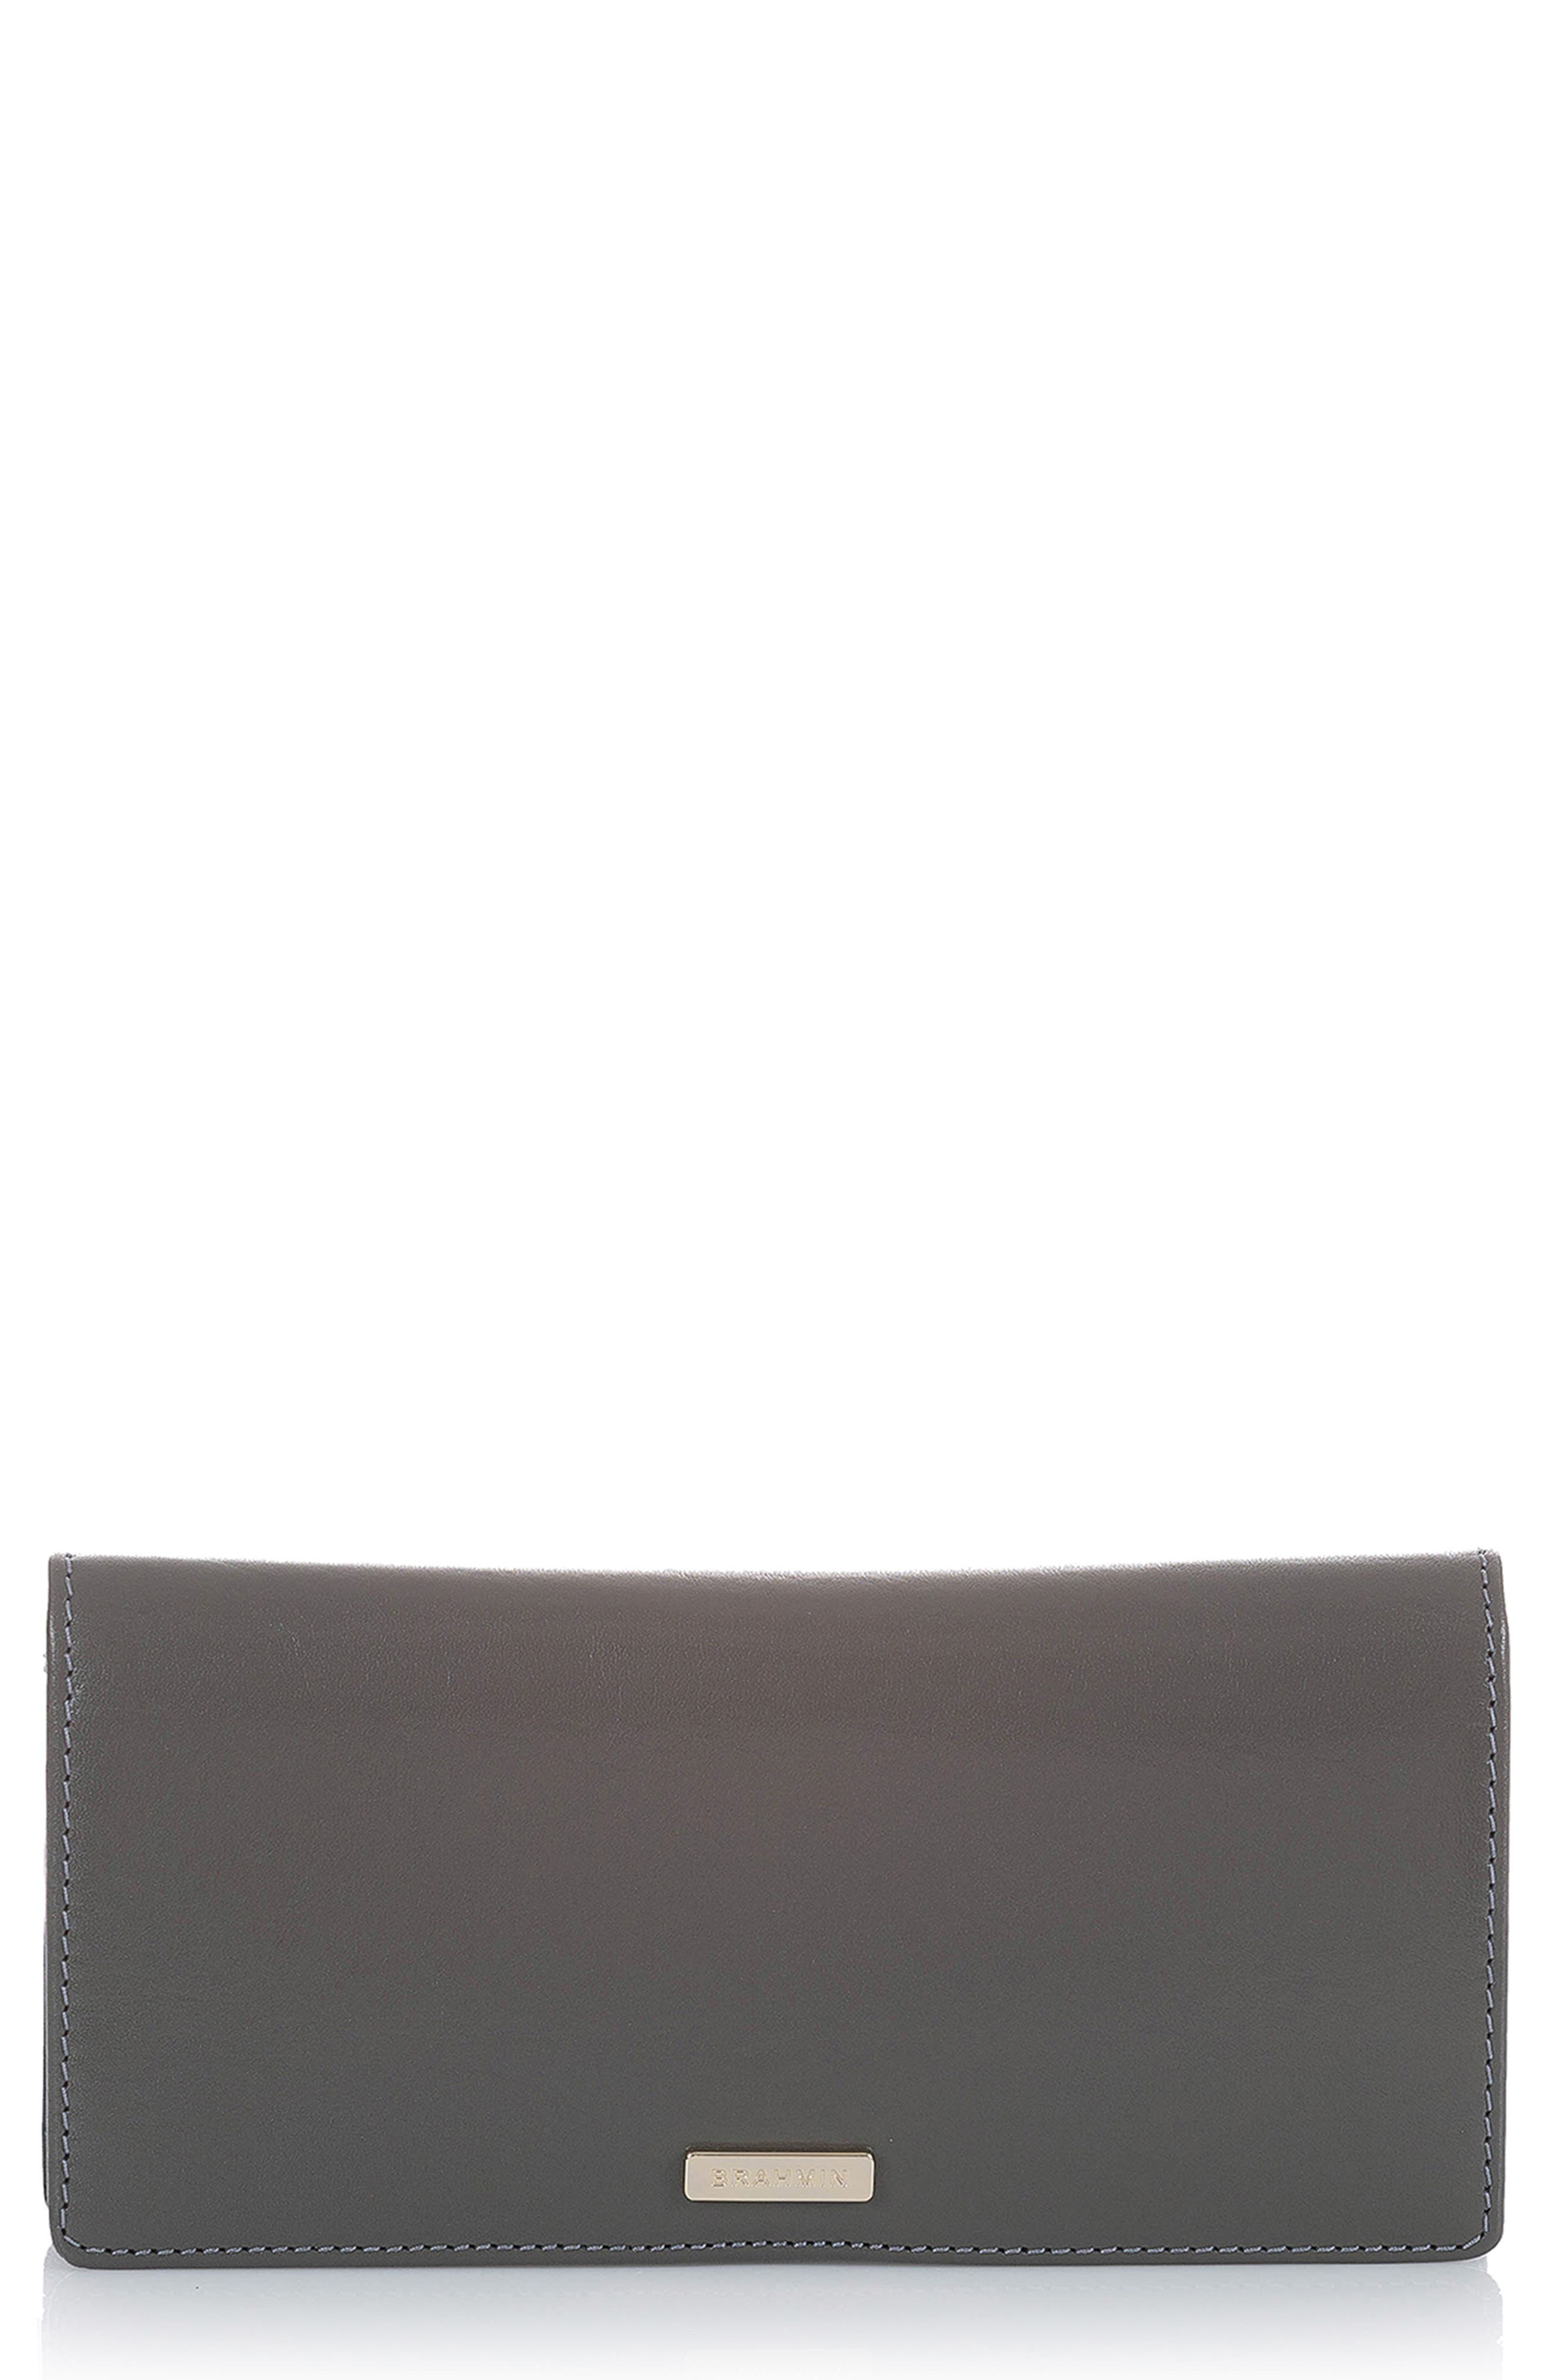 Ady Leather Wallet,                             Main thumbnail 1, color,                             CHARCOAL